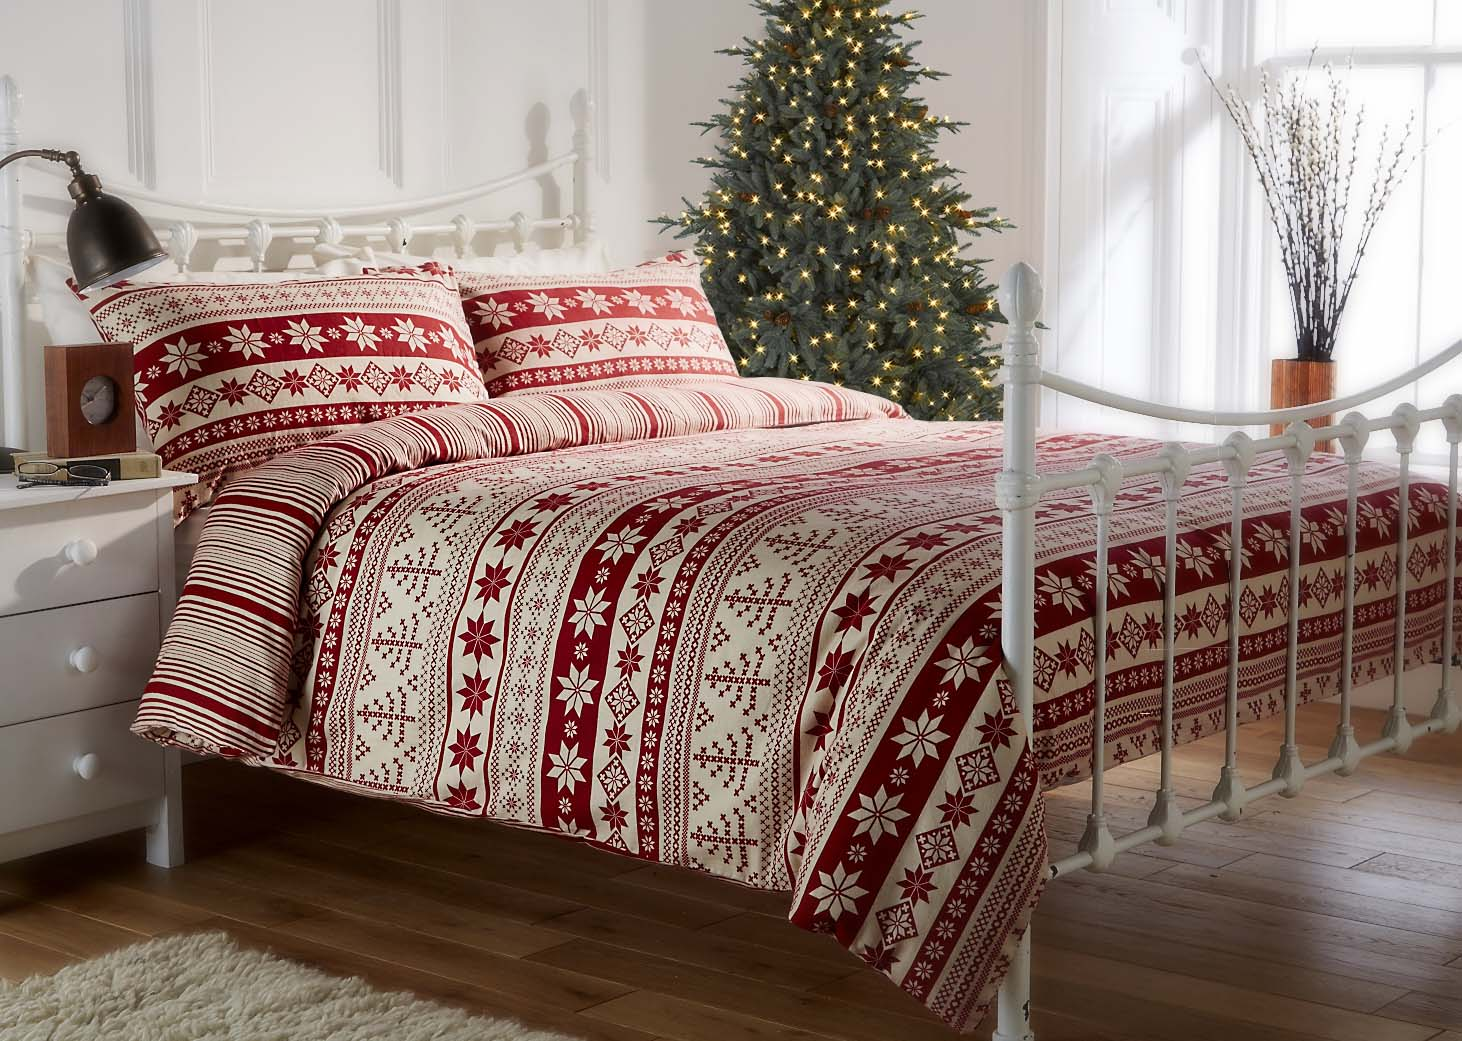 100 Brushed Cotton Flannelette Red Nordic Printed Festive Christmas Duvet Set